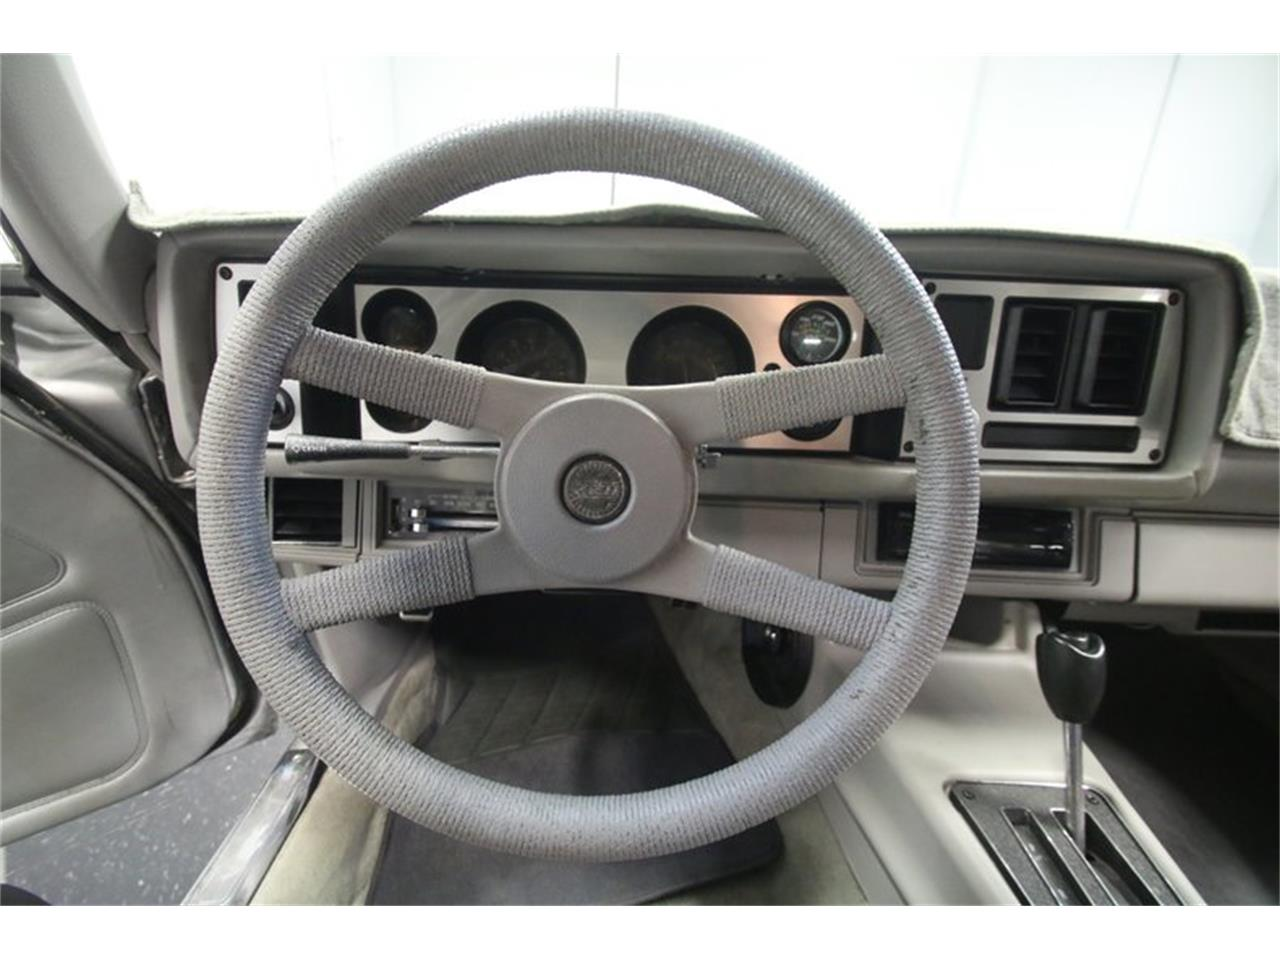 Large Picture of 1980 Chevrolet Camaro located in Lithia Springs Georgia - $23,995.00 Offered by Streetside Classics - Atlanta - O8Z8